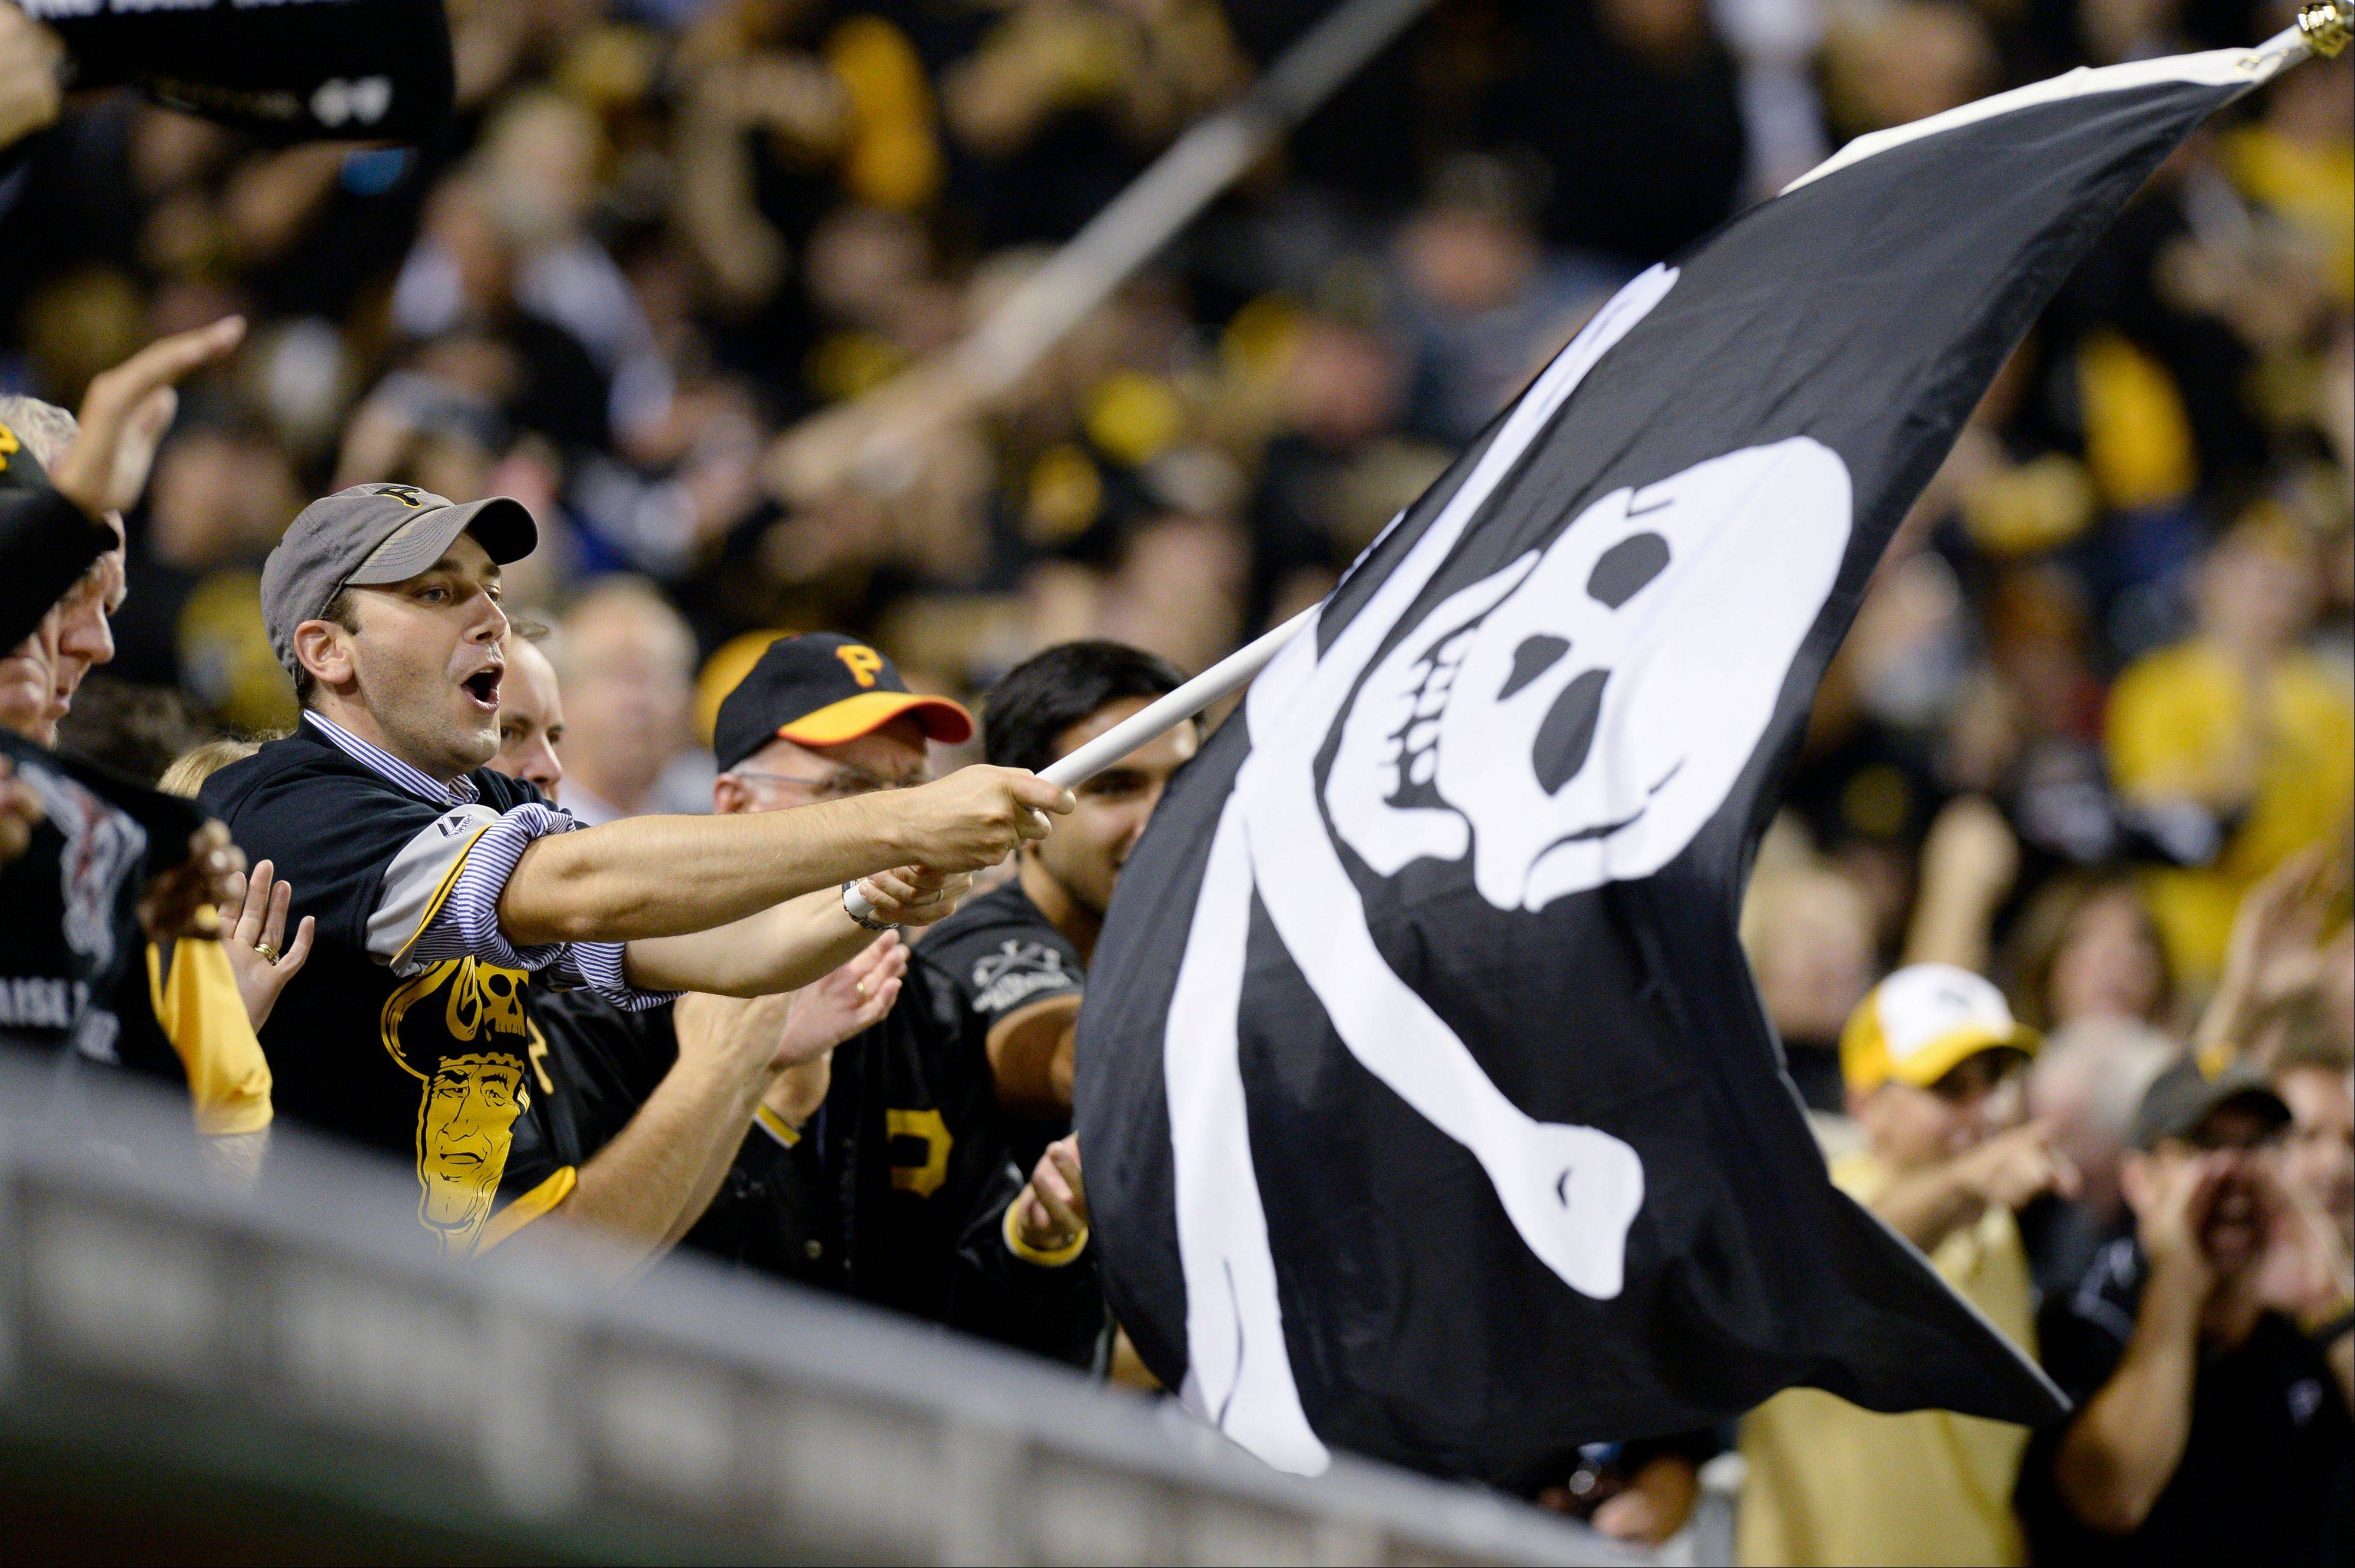 A Pittsburgh Pirates fan waves a Jolly Roger flag as the Pirates play the Cincinnati Reds in the NL wild-card playoff baseball game Tuesday, Oct. 1, 2013, in Pittsburgh.